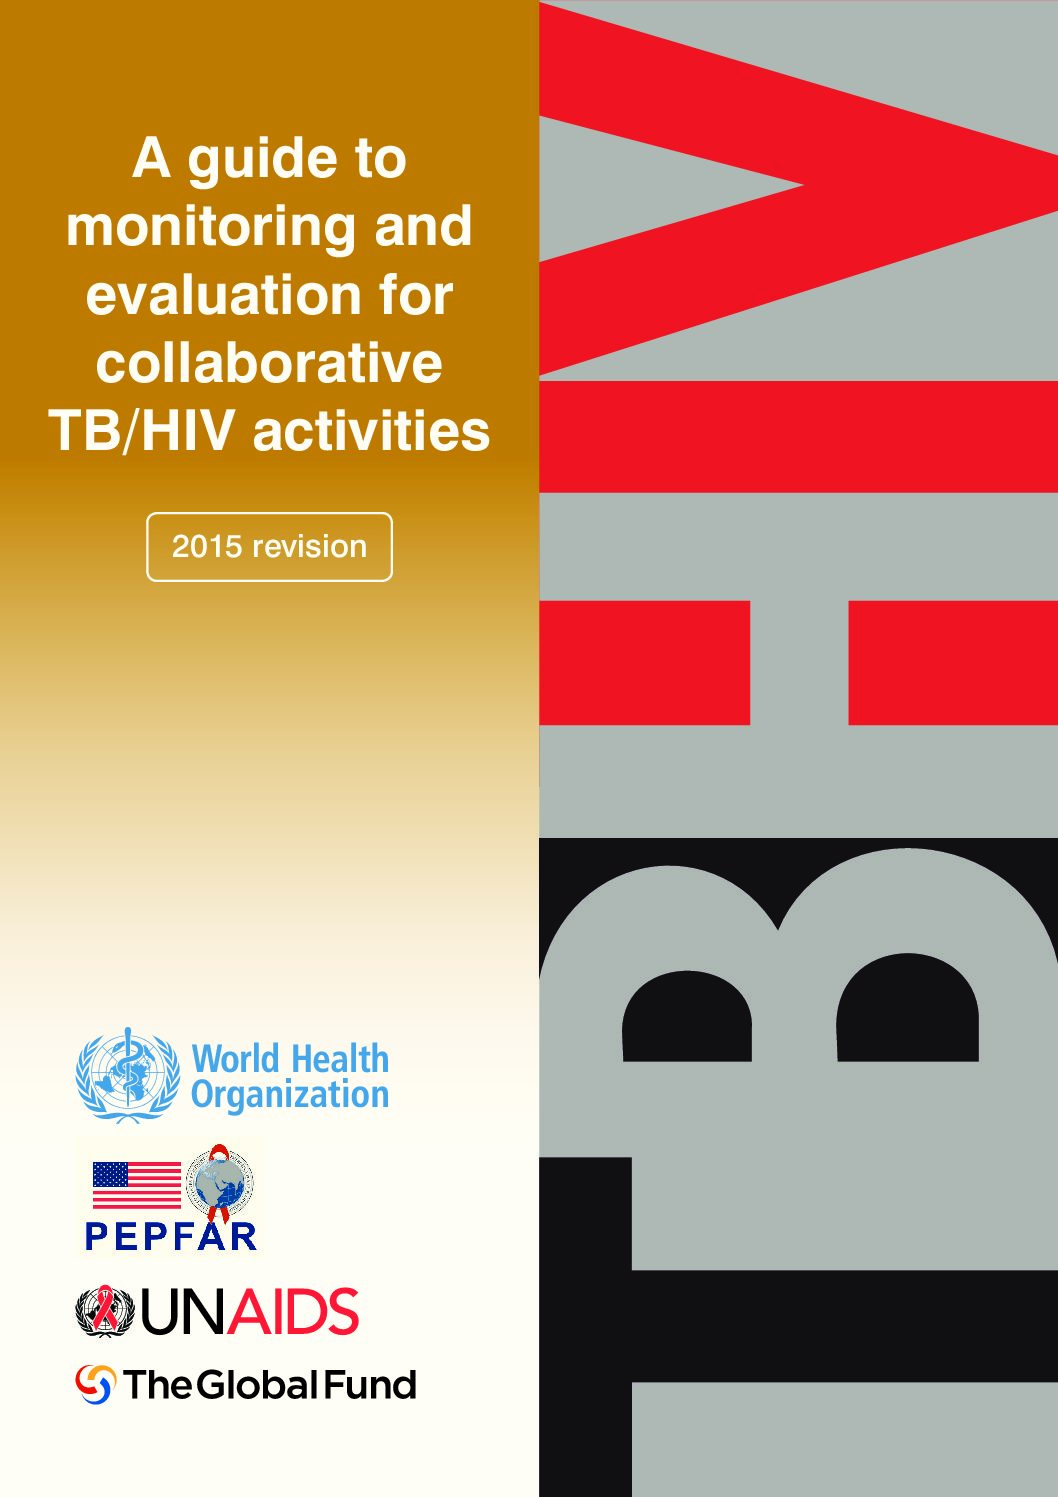 A guide to monitoring and evaluation for collaborative TB/HIV activities.